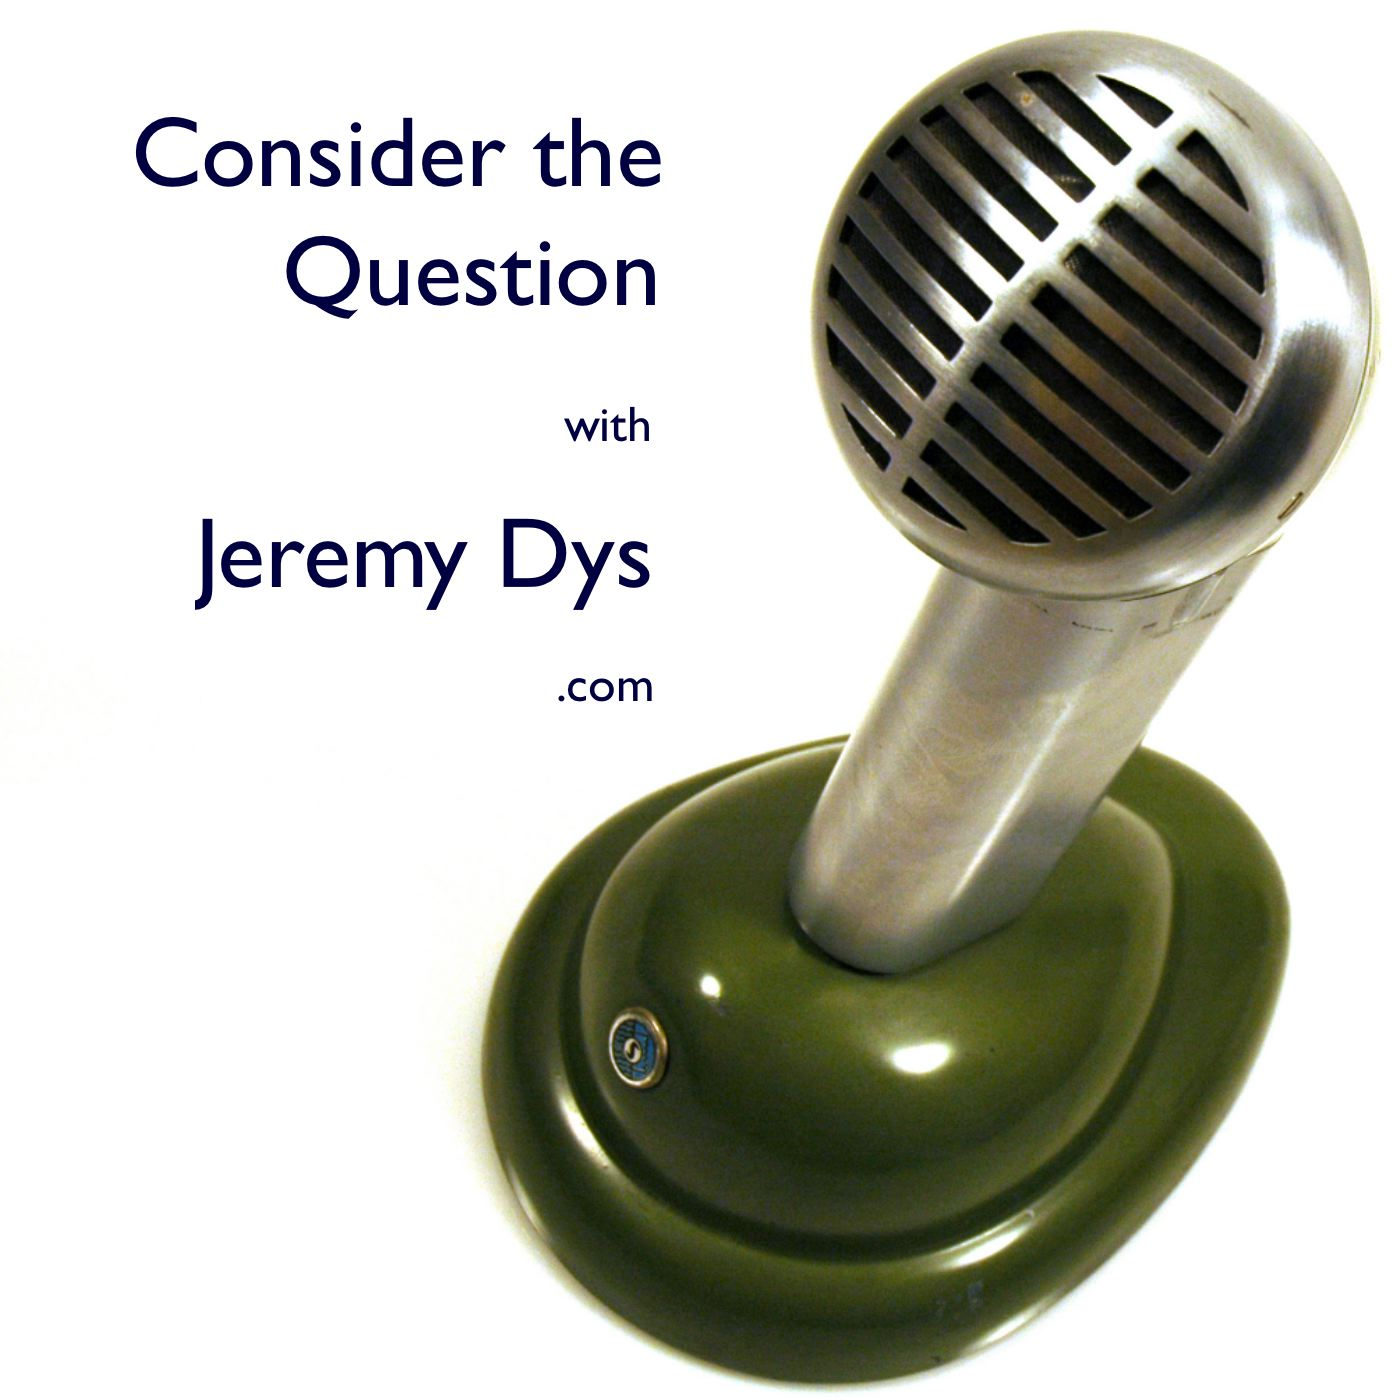 Consider the Question - JeremyDys.com